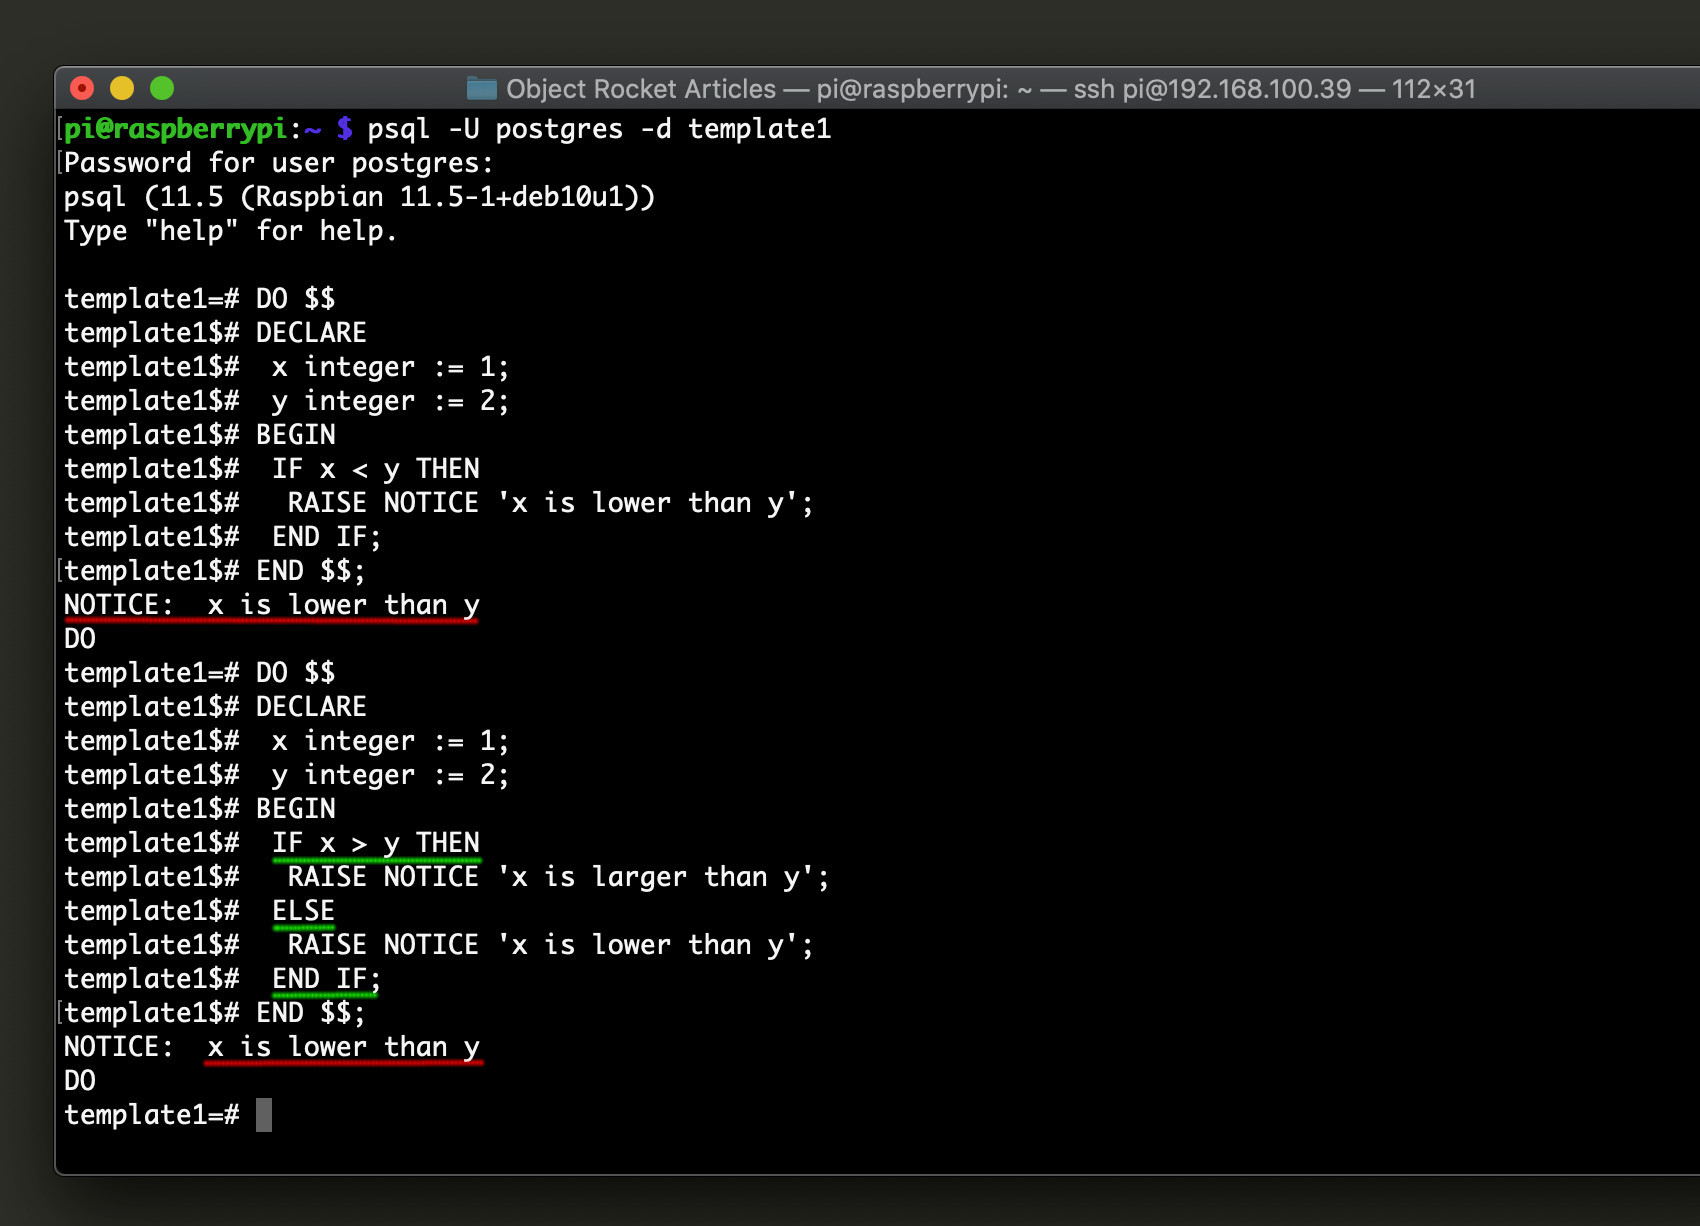 Screenshot of the Postgres IF statements in the psql command line interface for PostgreSQL